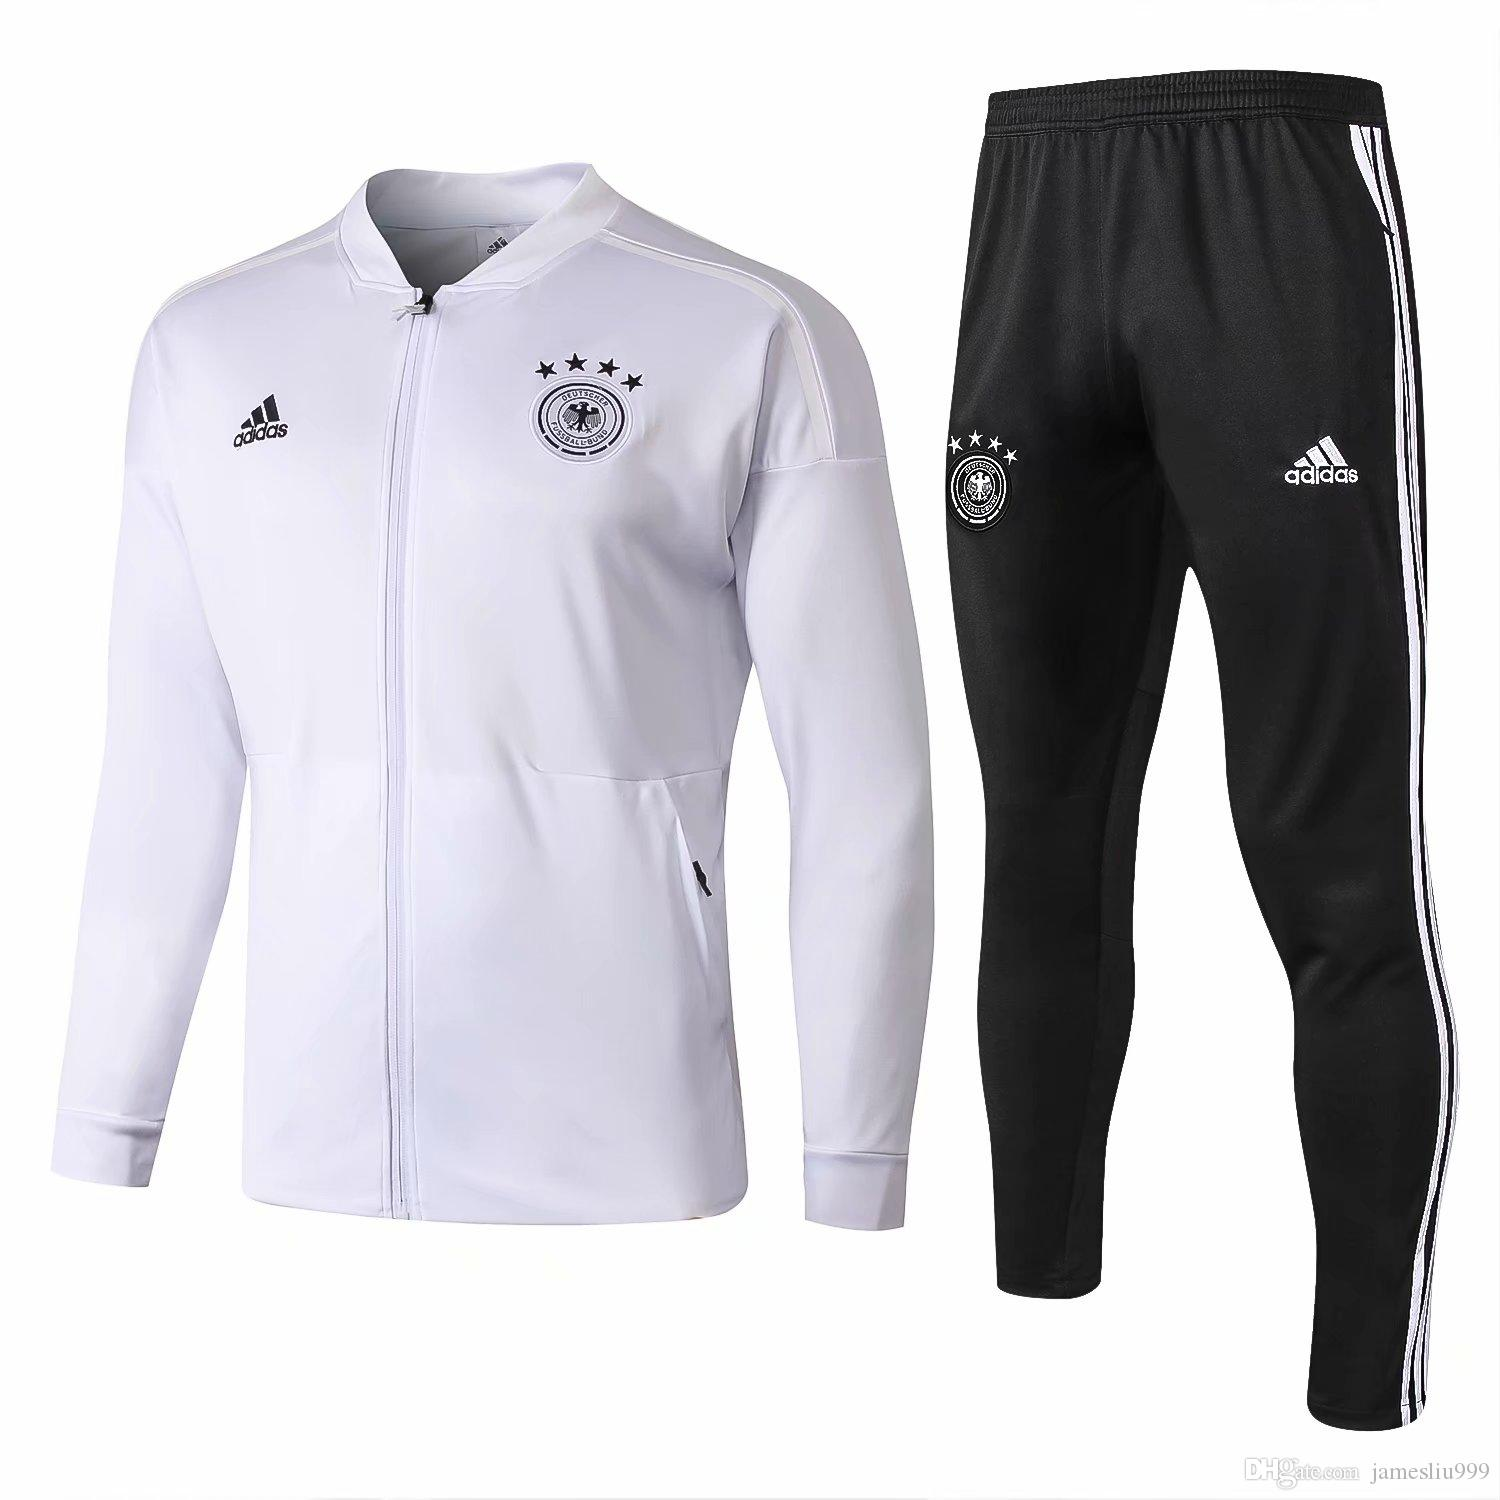 cf429049875 Germany tracksuit jackets Sportswear 1819 maillot de foot Mens tracksuits  Germany soccer jackets Long sleeve+pants Set clothing